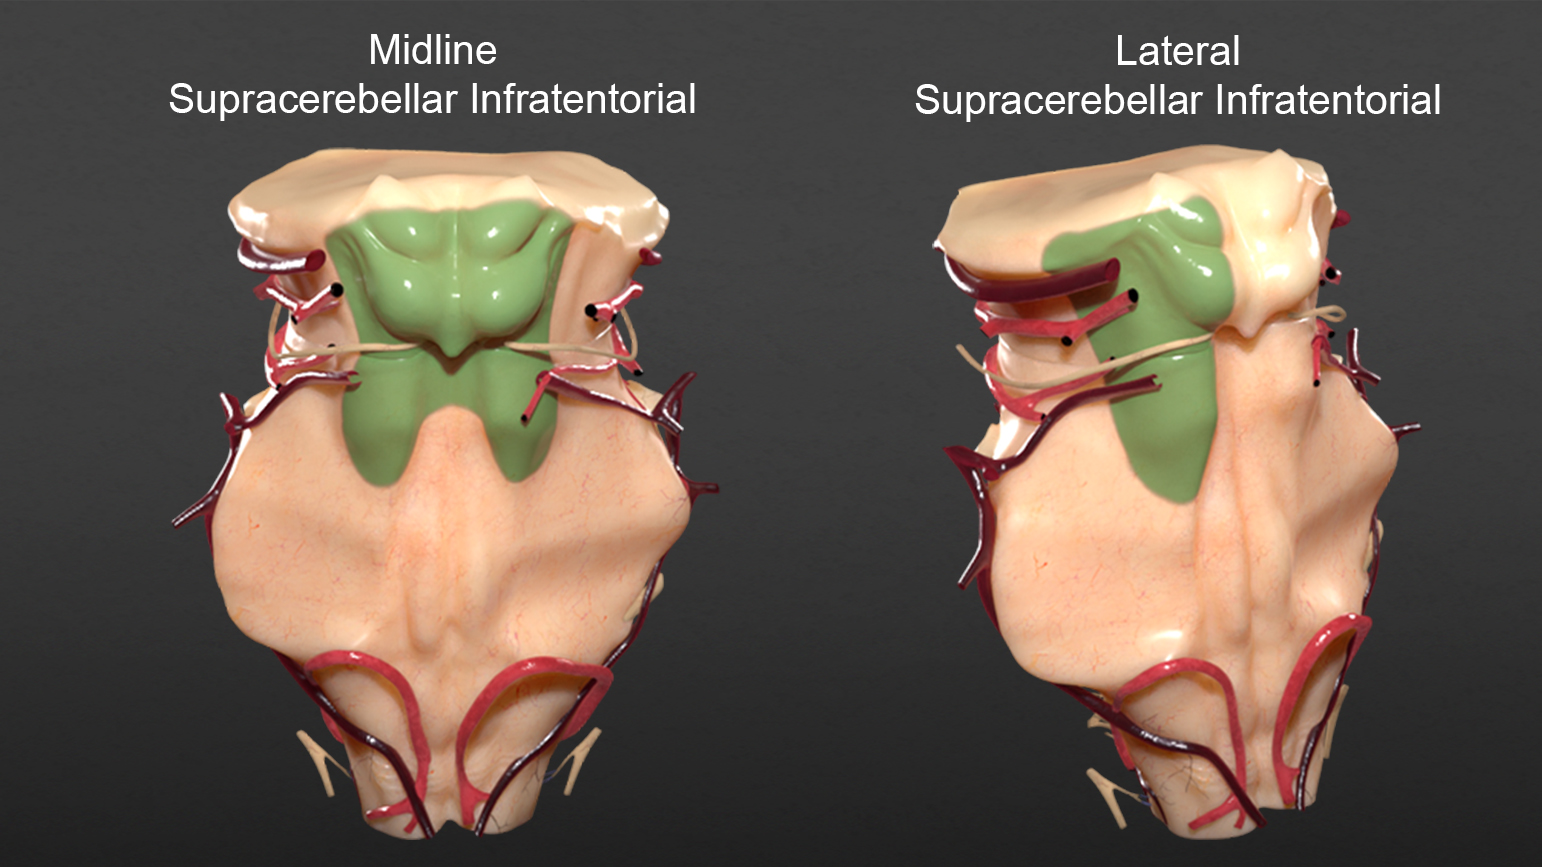 Figure 10:  The areas of exposure (green) for midline and lateral supracerebellar infratentorial cranial approaches are illustrated.